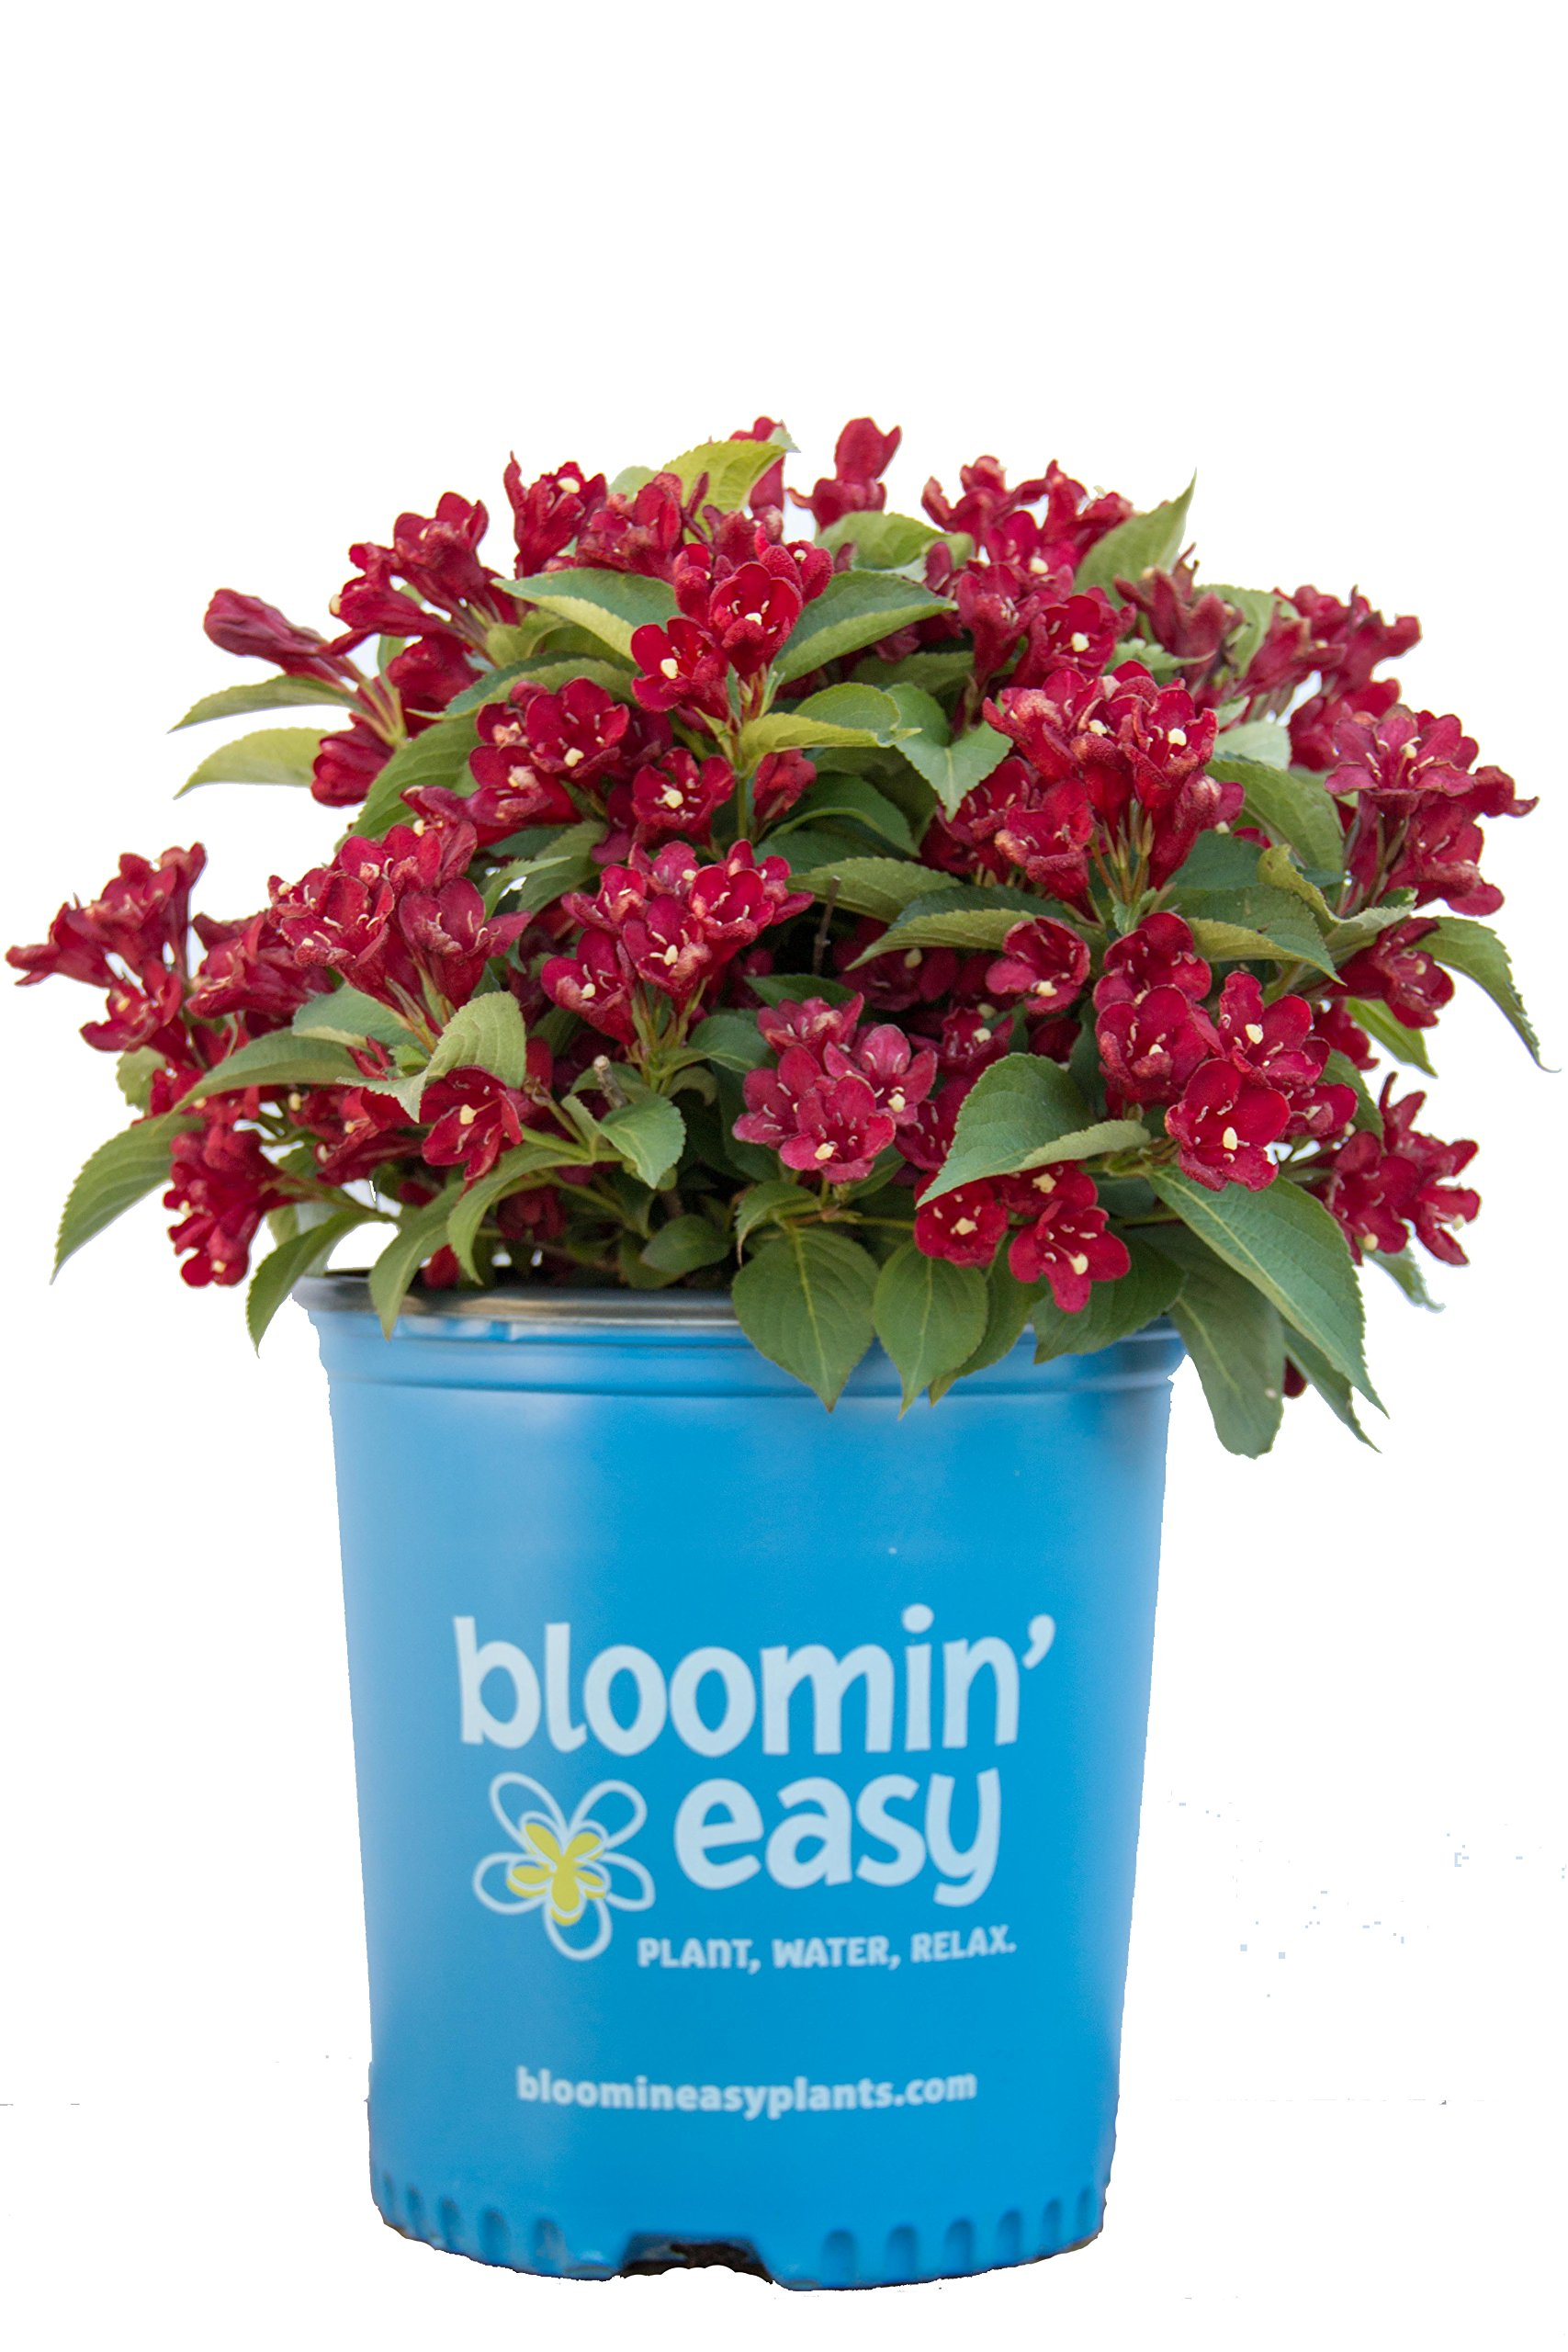 Weigela x Date Night Maroon Swoon (Weigela) Shrub, deep red Flowers, 3 - Size Container